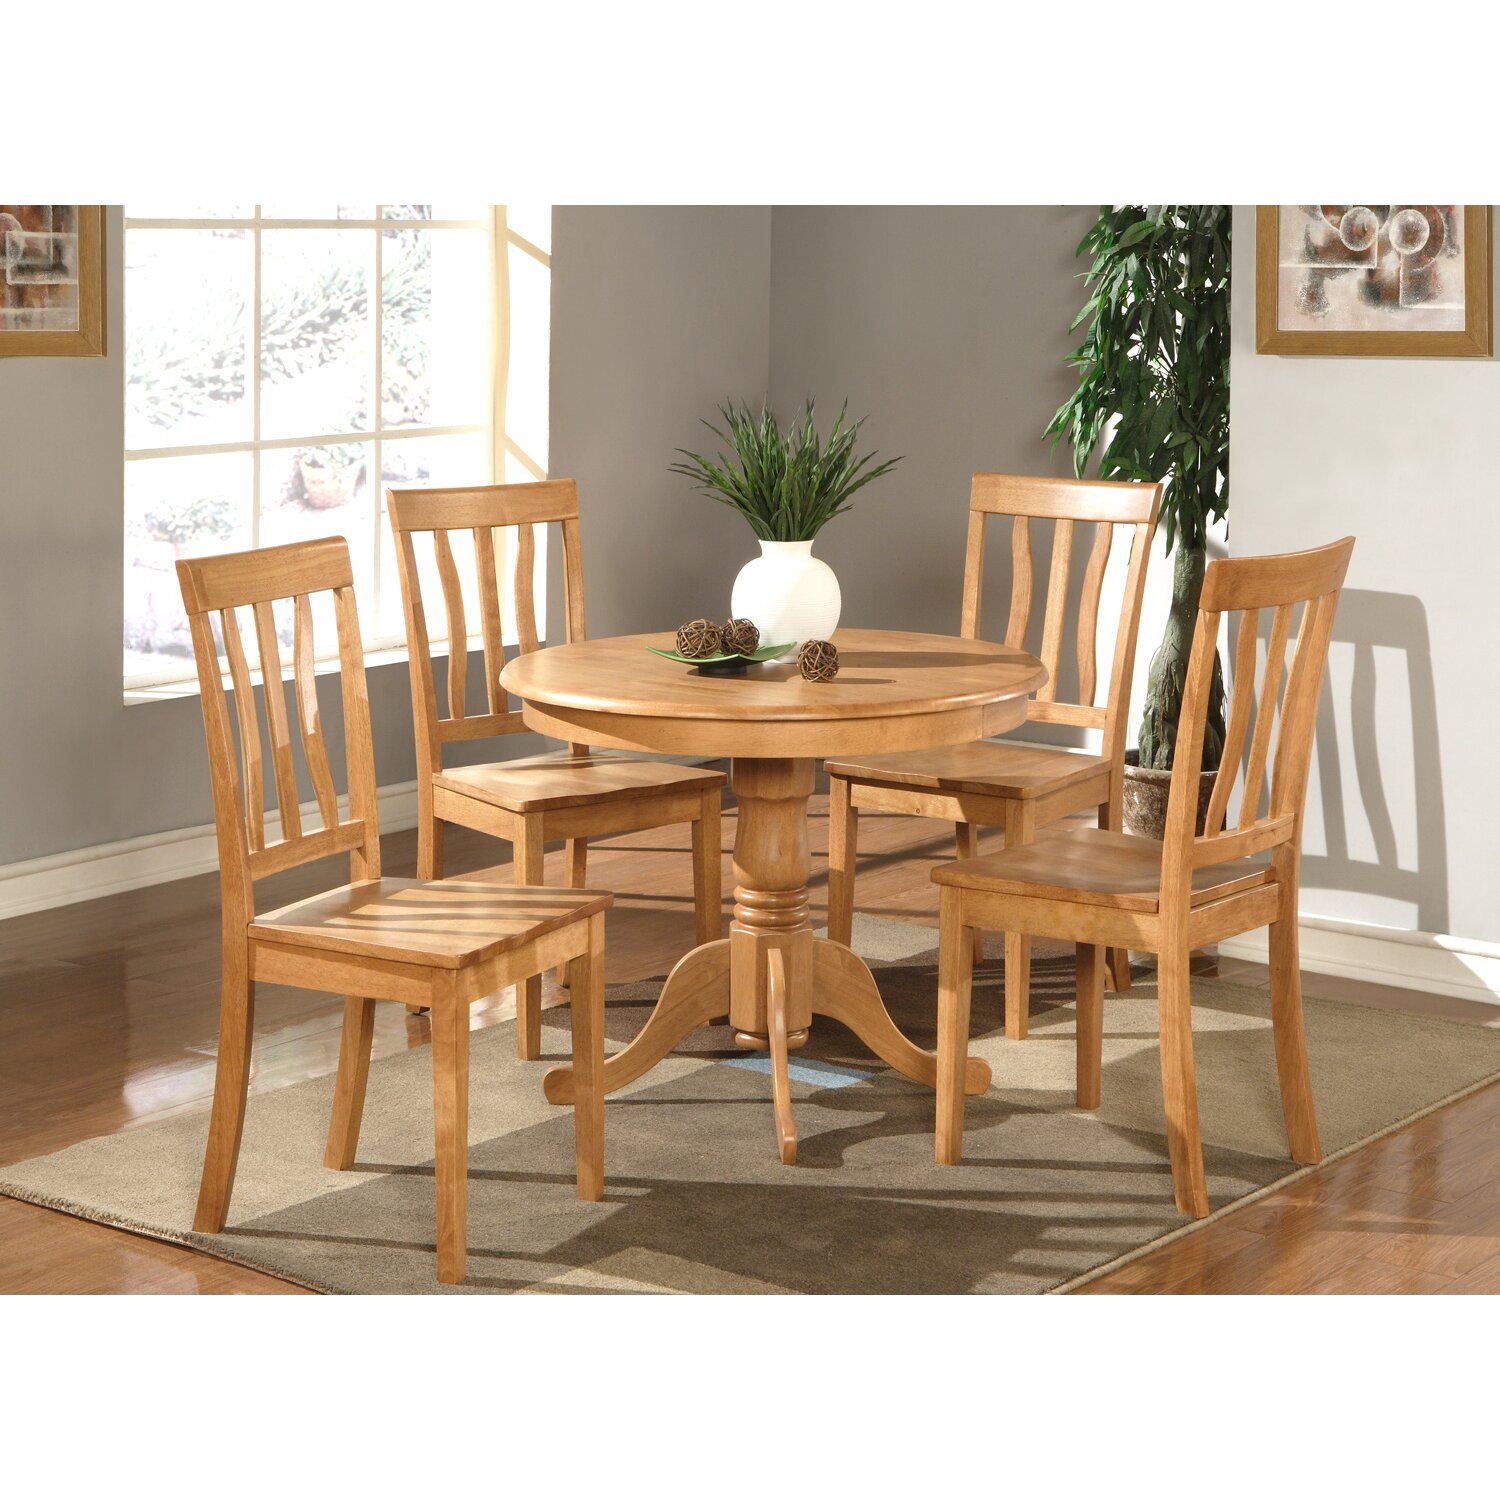 Wooden importers antique 5 piece dining set reviews for Wooden dining set